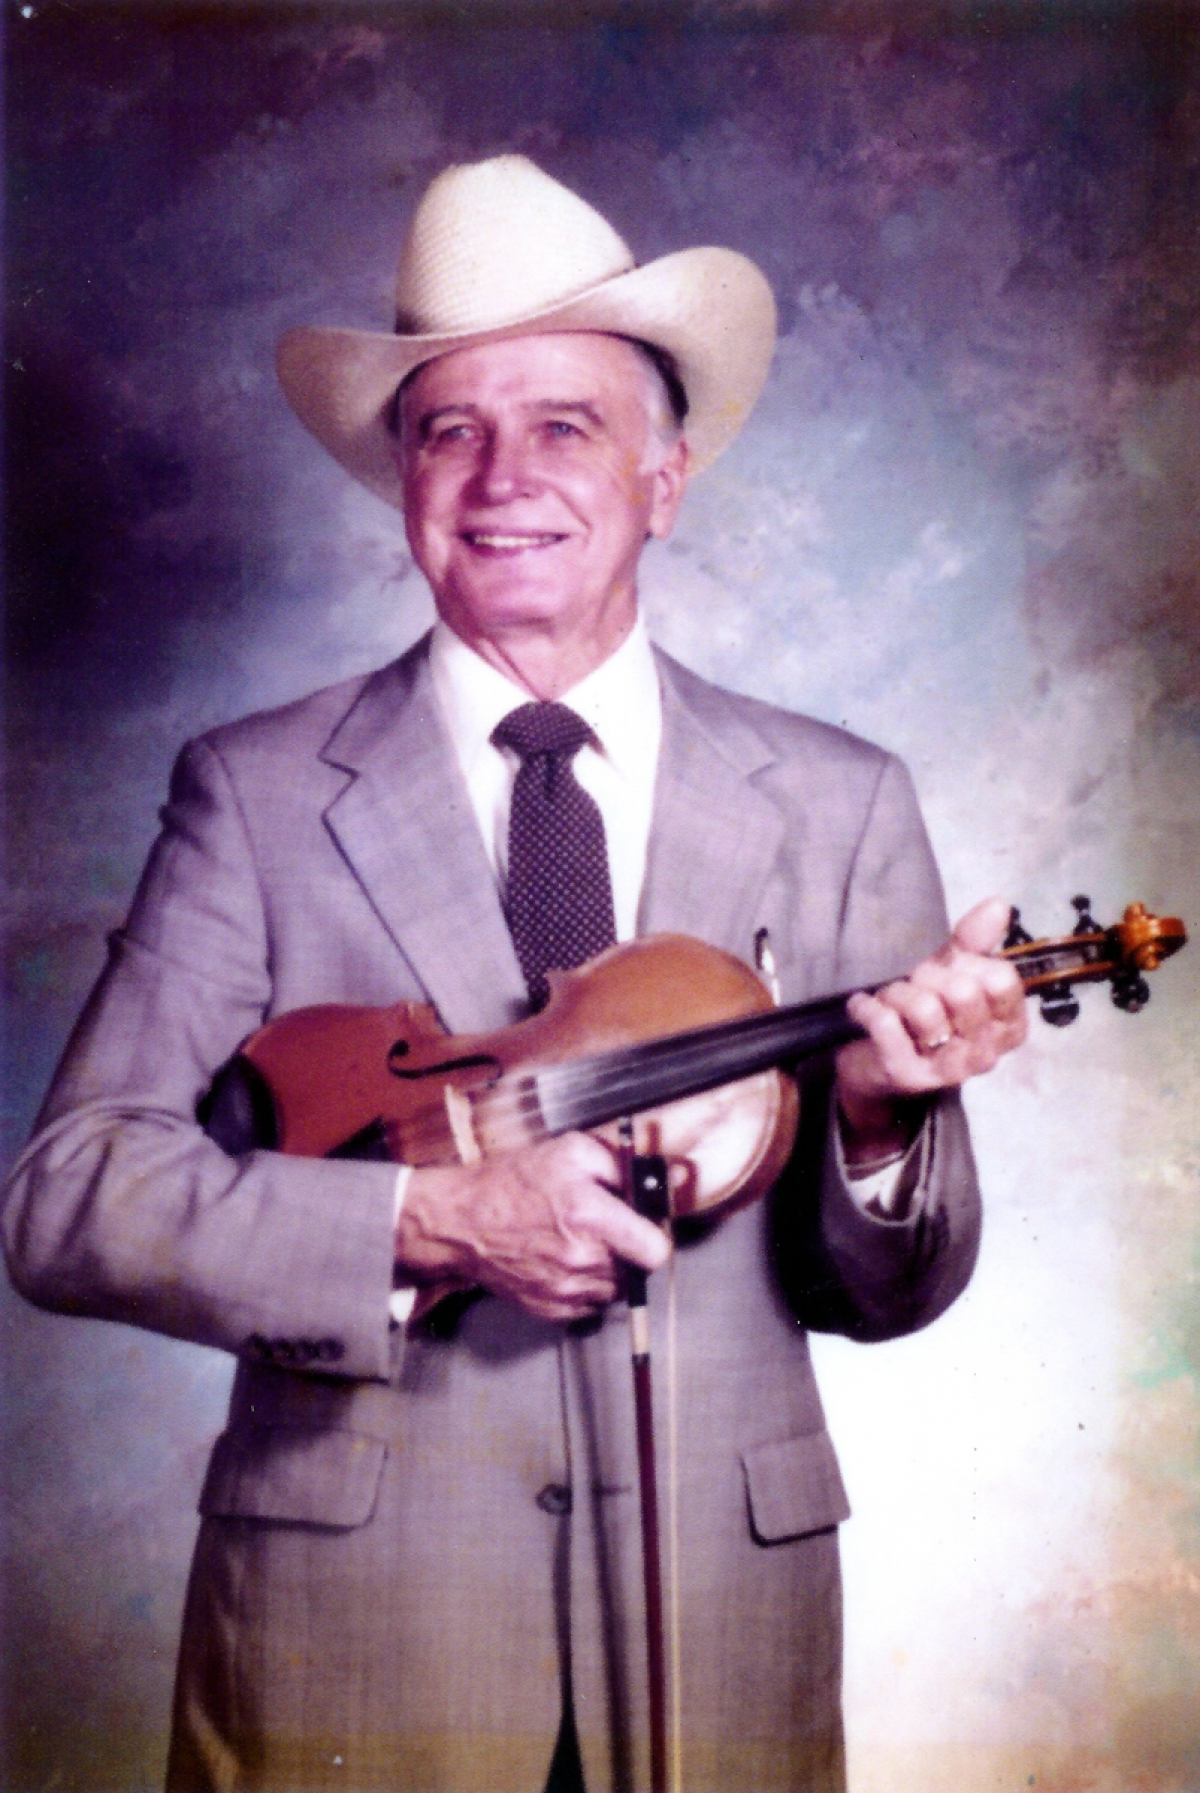 Jim Shumate, a native of Wilkes County, North Carolina, made his name as a young fiddler in the 1940s playing with Bill Monroe's Blue Grass Boys and later with Lester Flatt and Earl Scrugg's Foggy Mountain Boys. As a fiddler, Shumate pioneered innovations that are still admired and studied by musicians today.